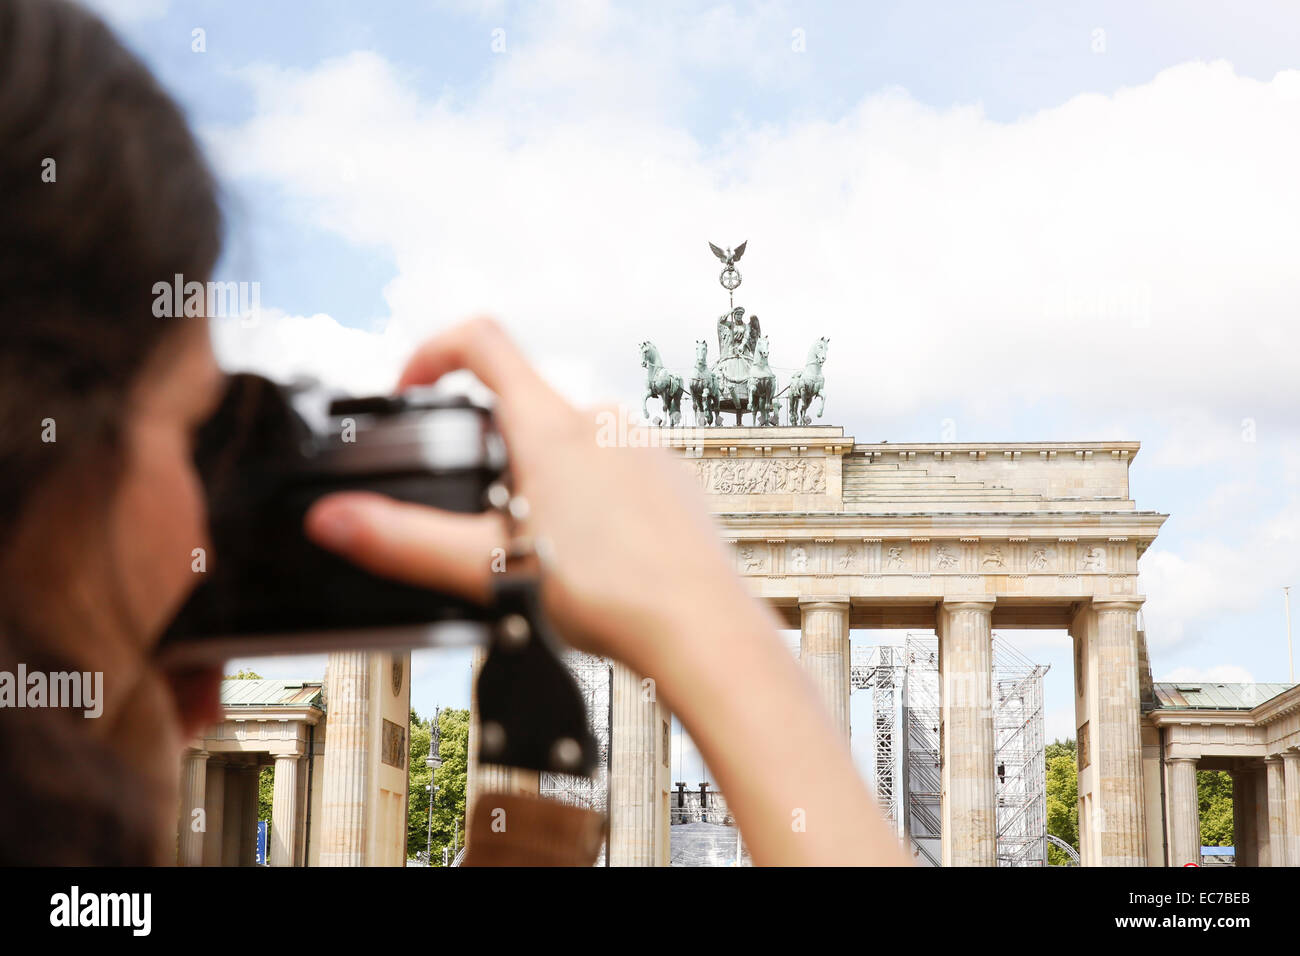 Germany, Berlin, female tourist photographing Brandenburg Gate - Stock Image